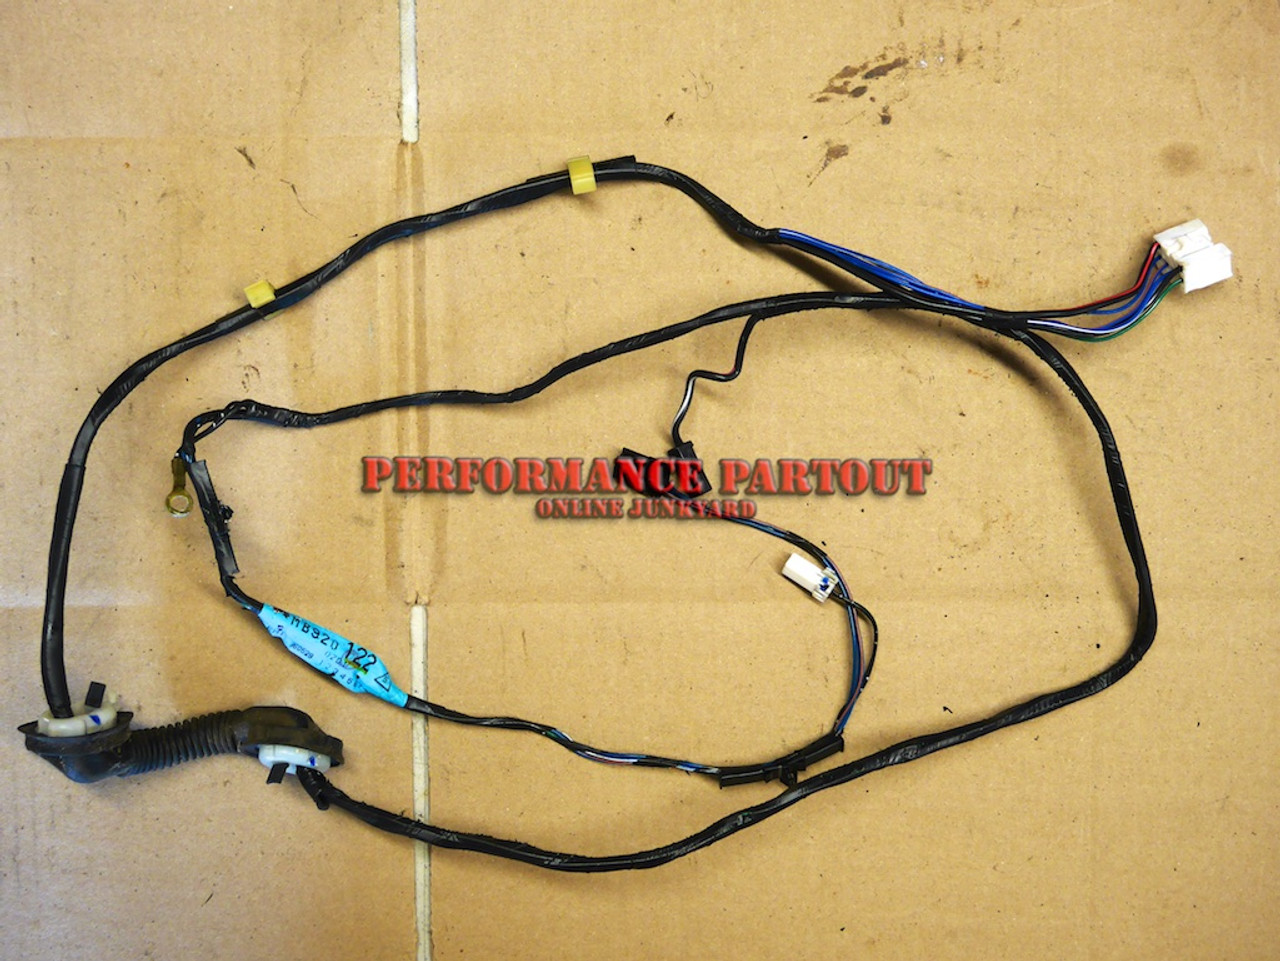 hight resolution of  oxygen hatch wiring harness 2g dsm performance partout on safety harness nakamichi harness